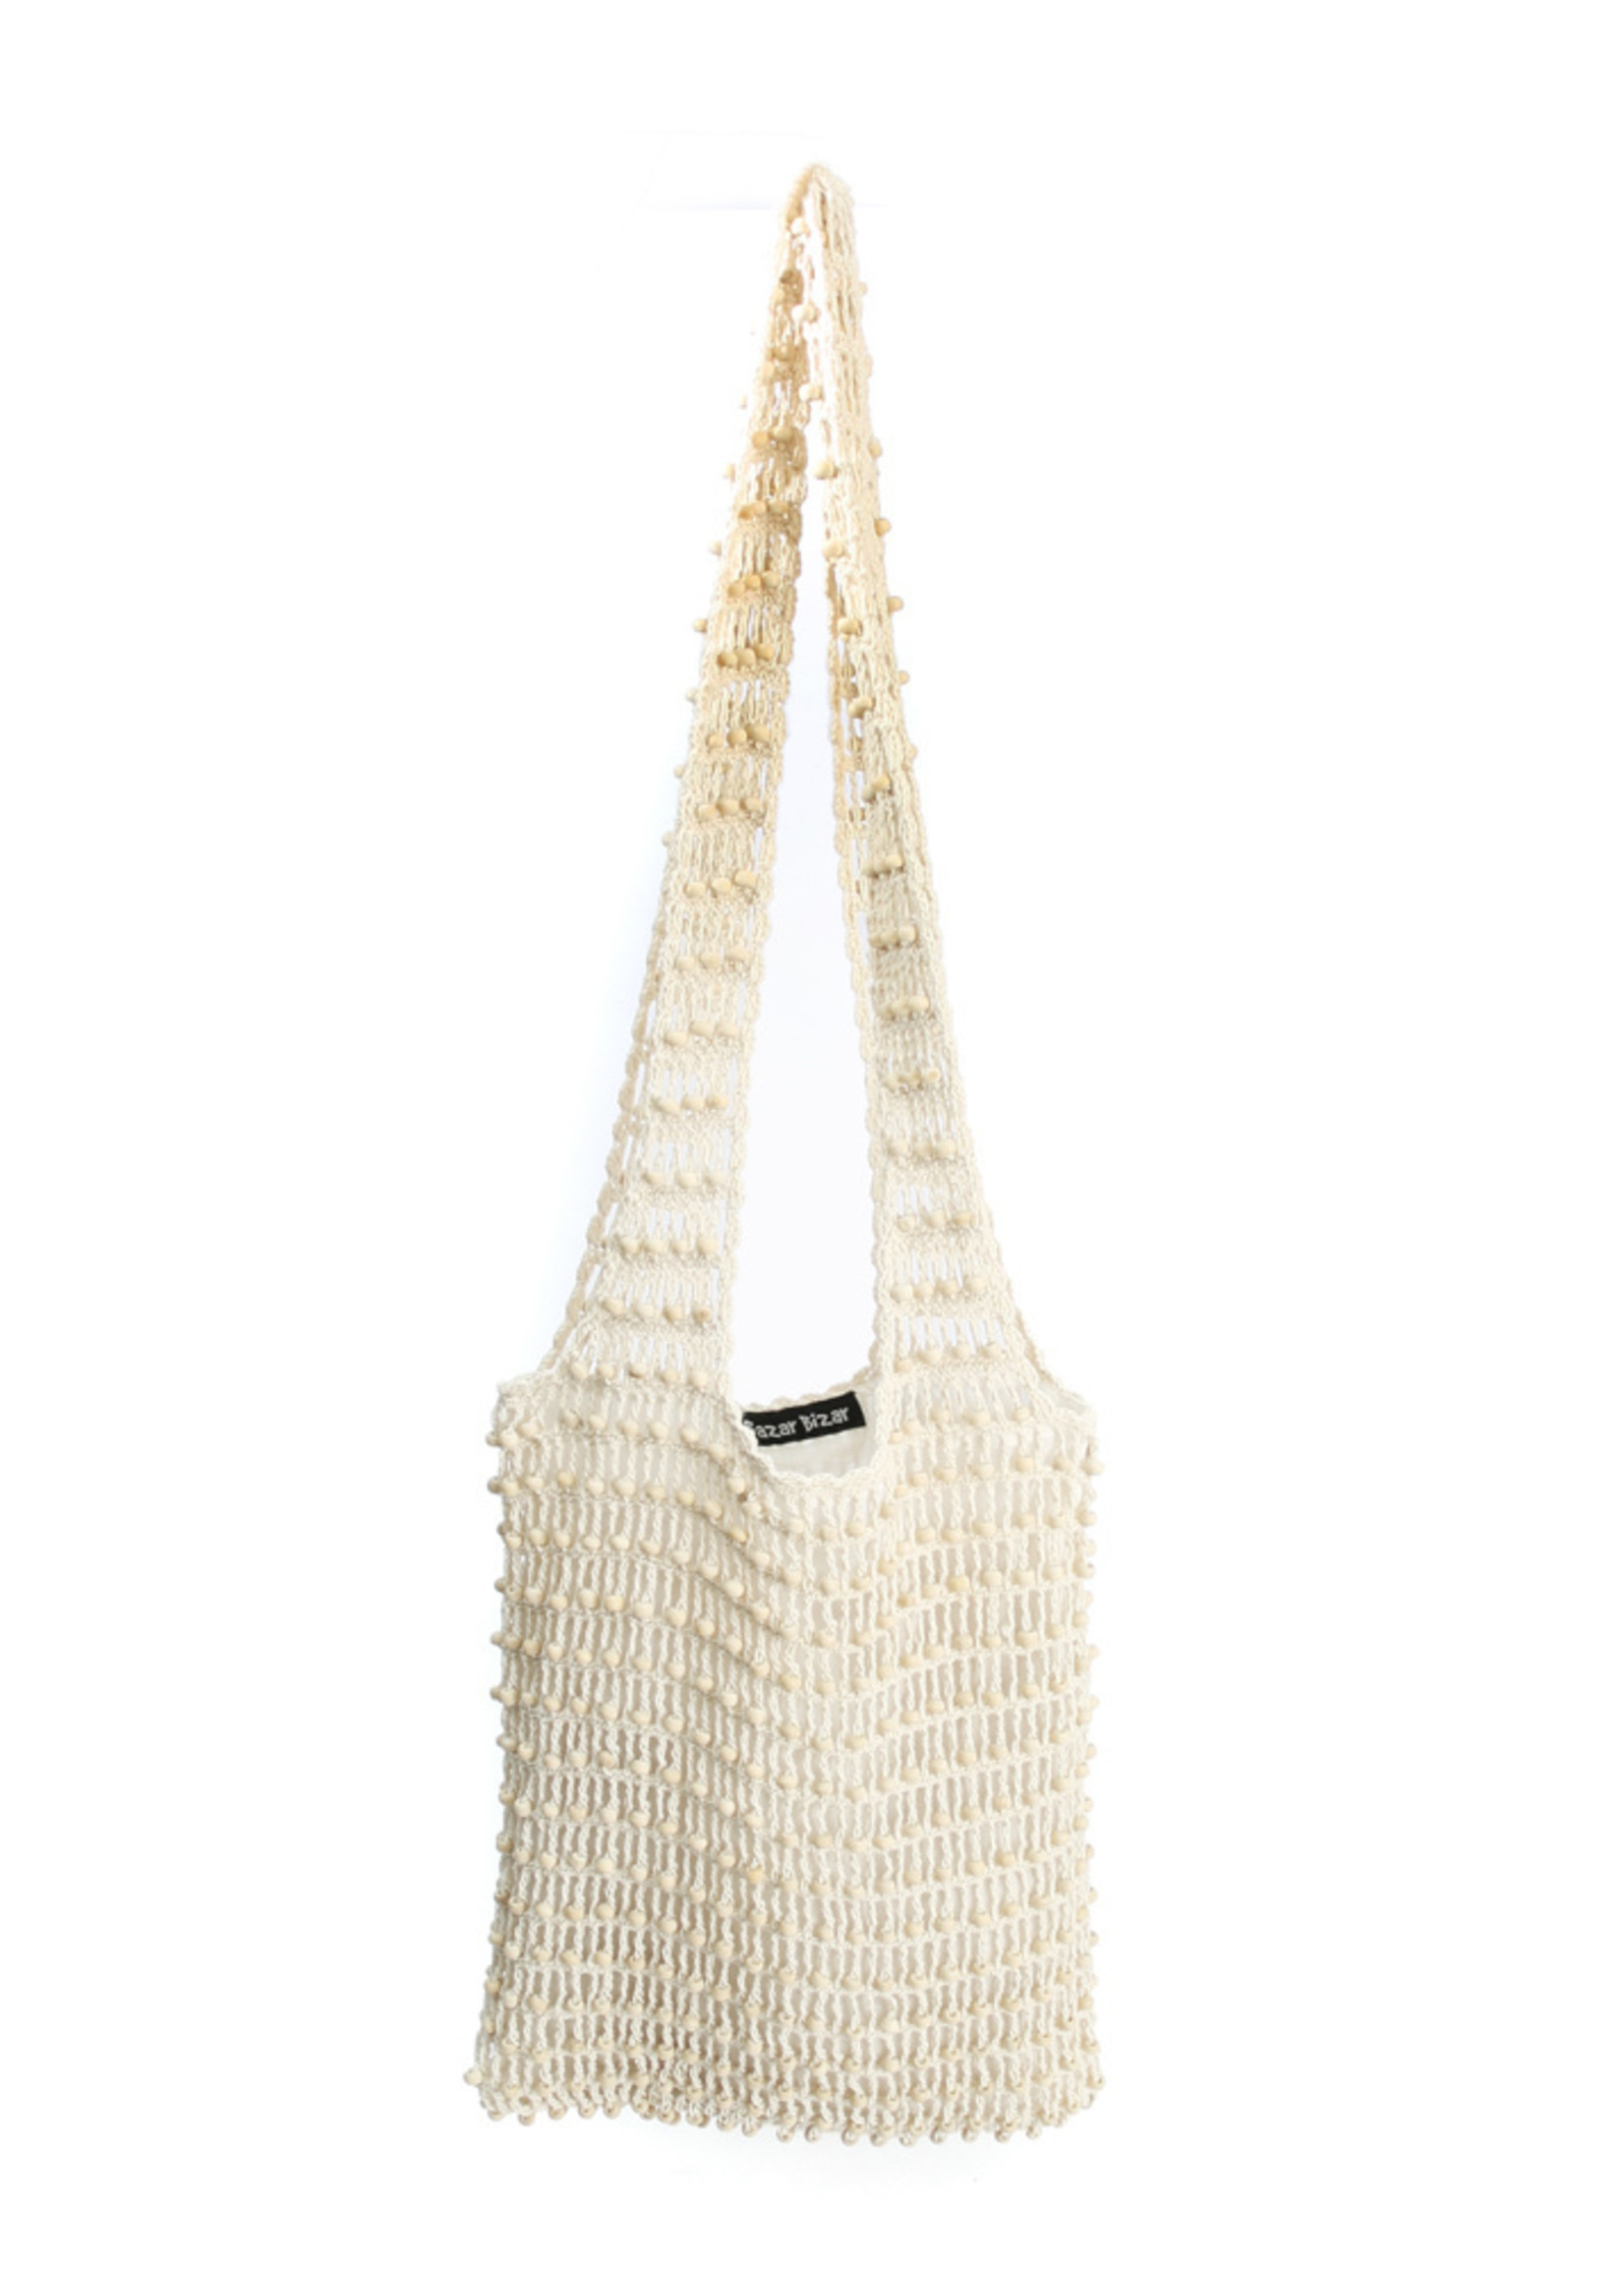 The Day in Day out Tote - White